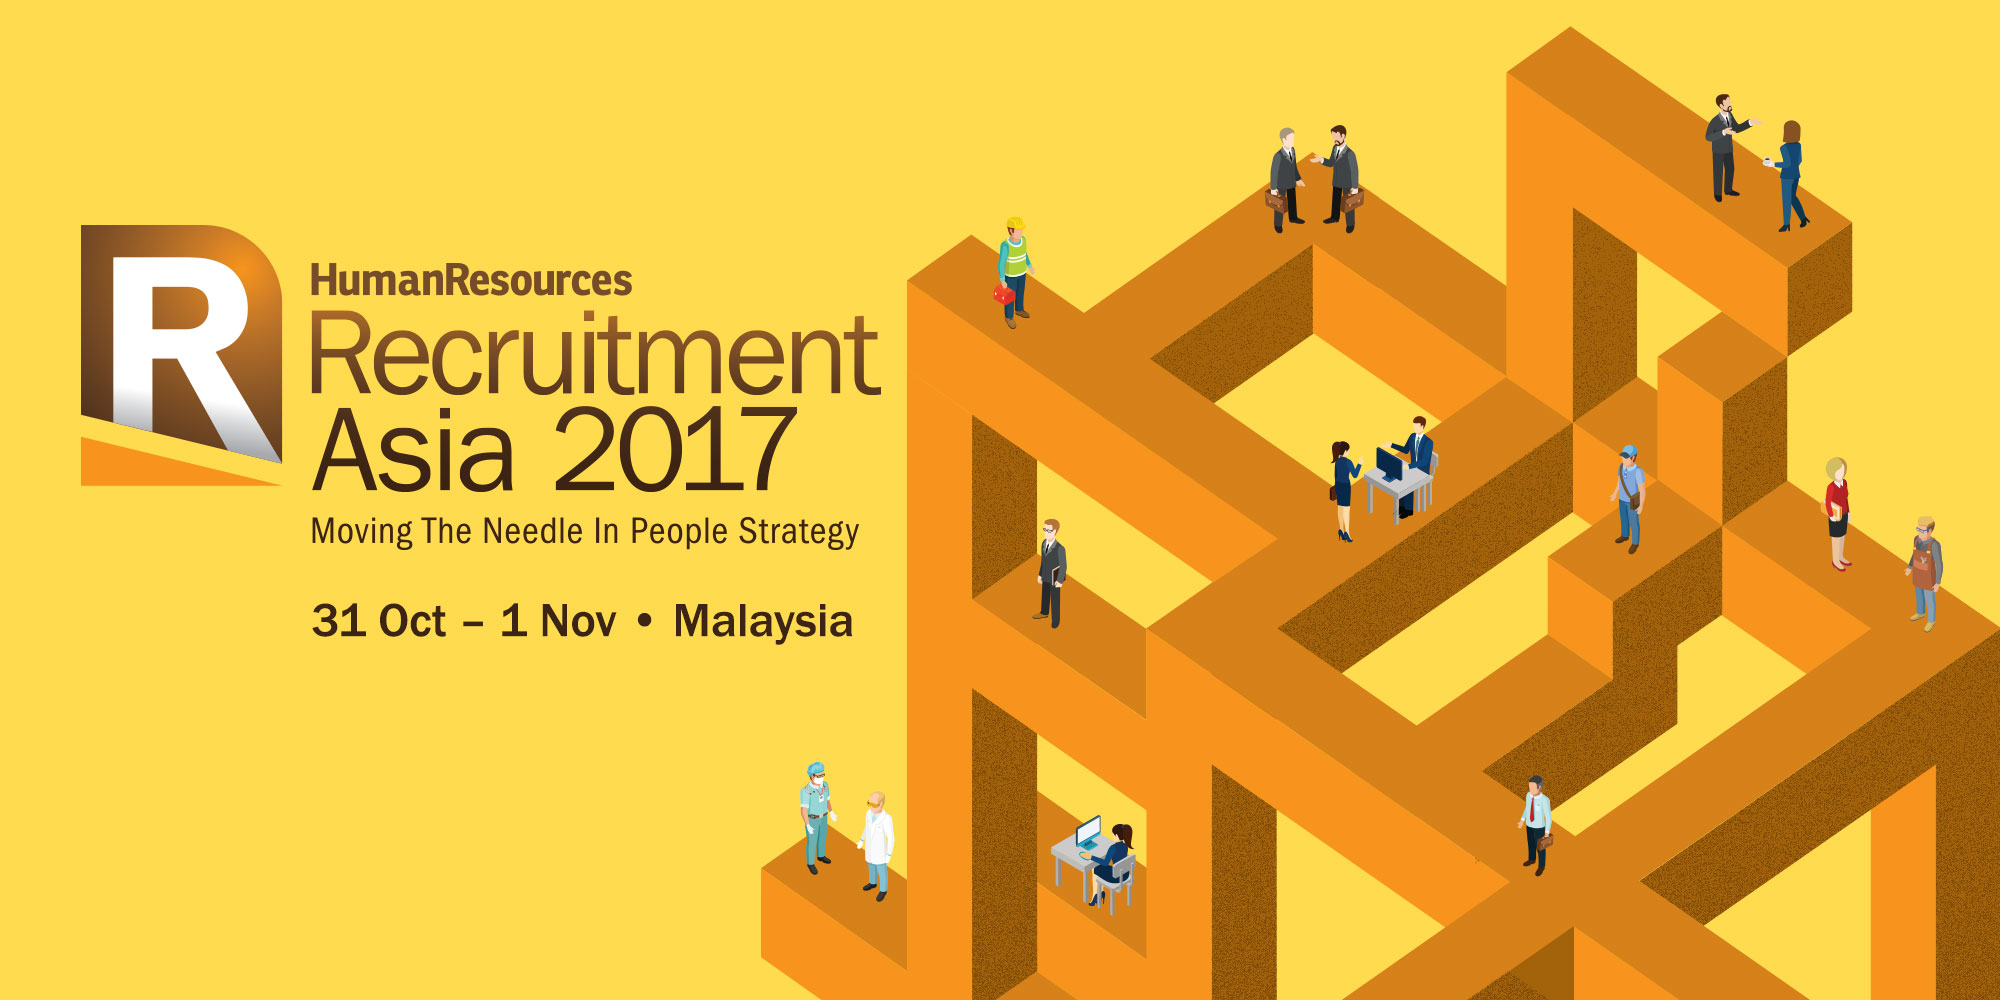 HR Recruitment Asia 2017